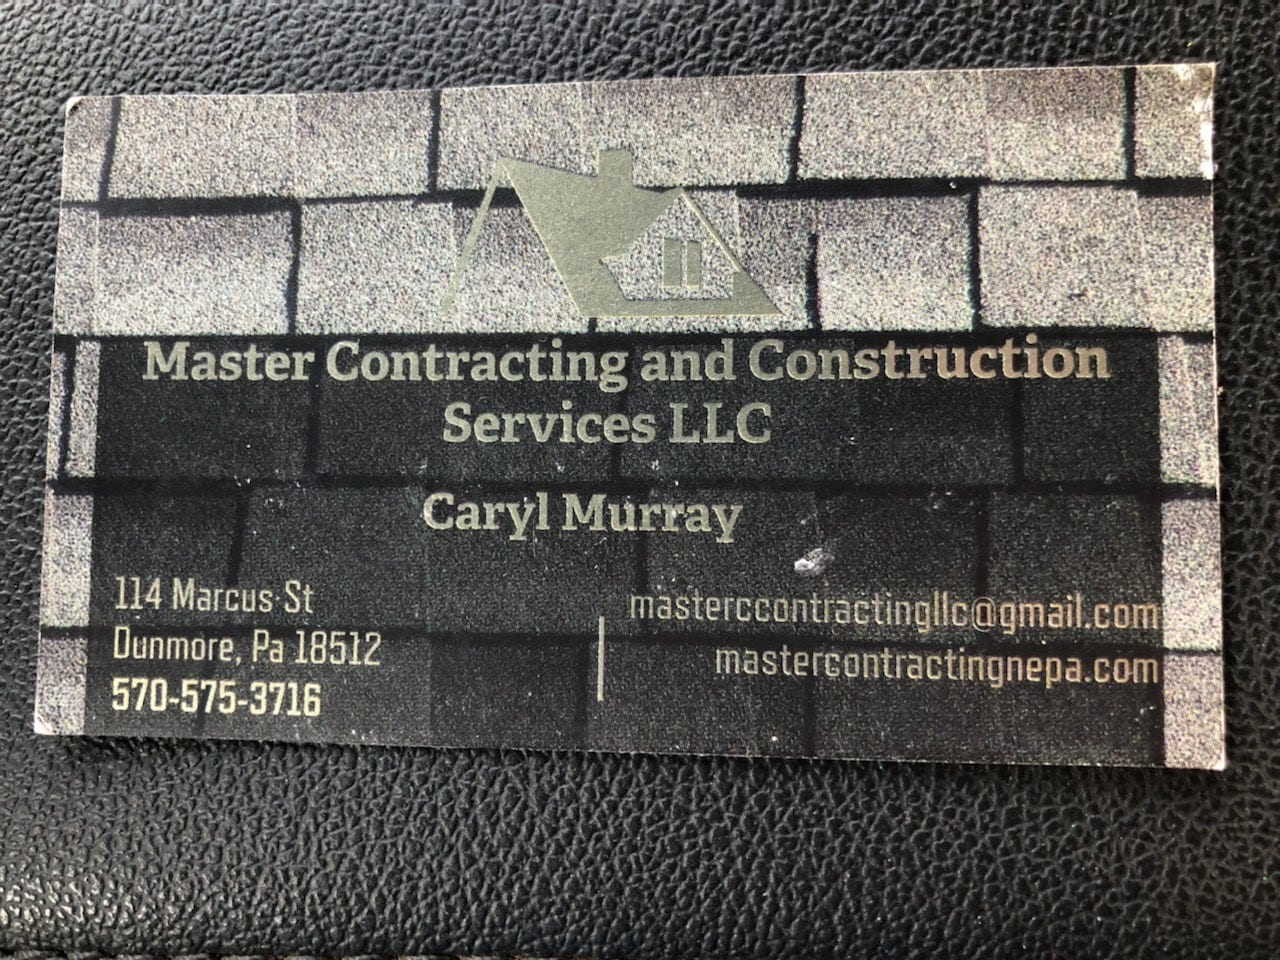 Master Contracting and Construction Services LLC